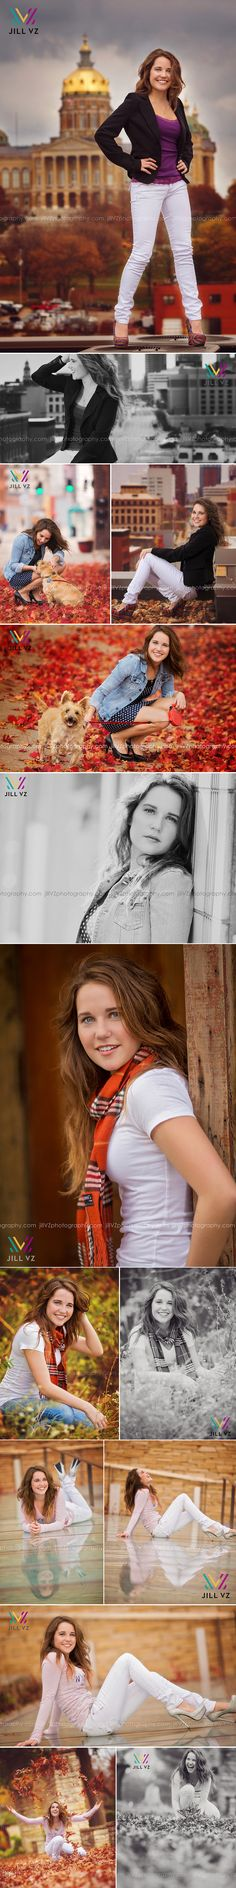 Jill VZ Photography » Unique custom high school senior portrait art experience for the Des Moines, West Des Moines, Johnston & Waukee area (Iowa) and beyond